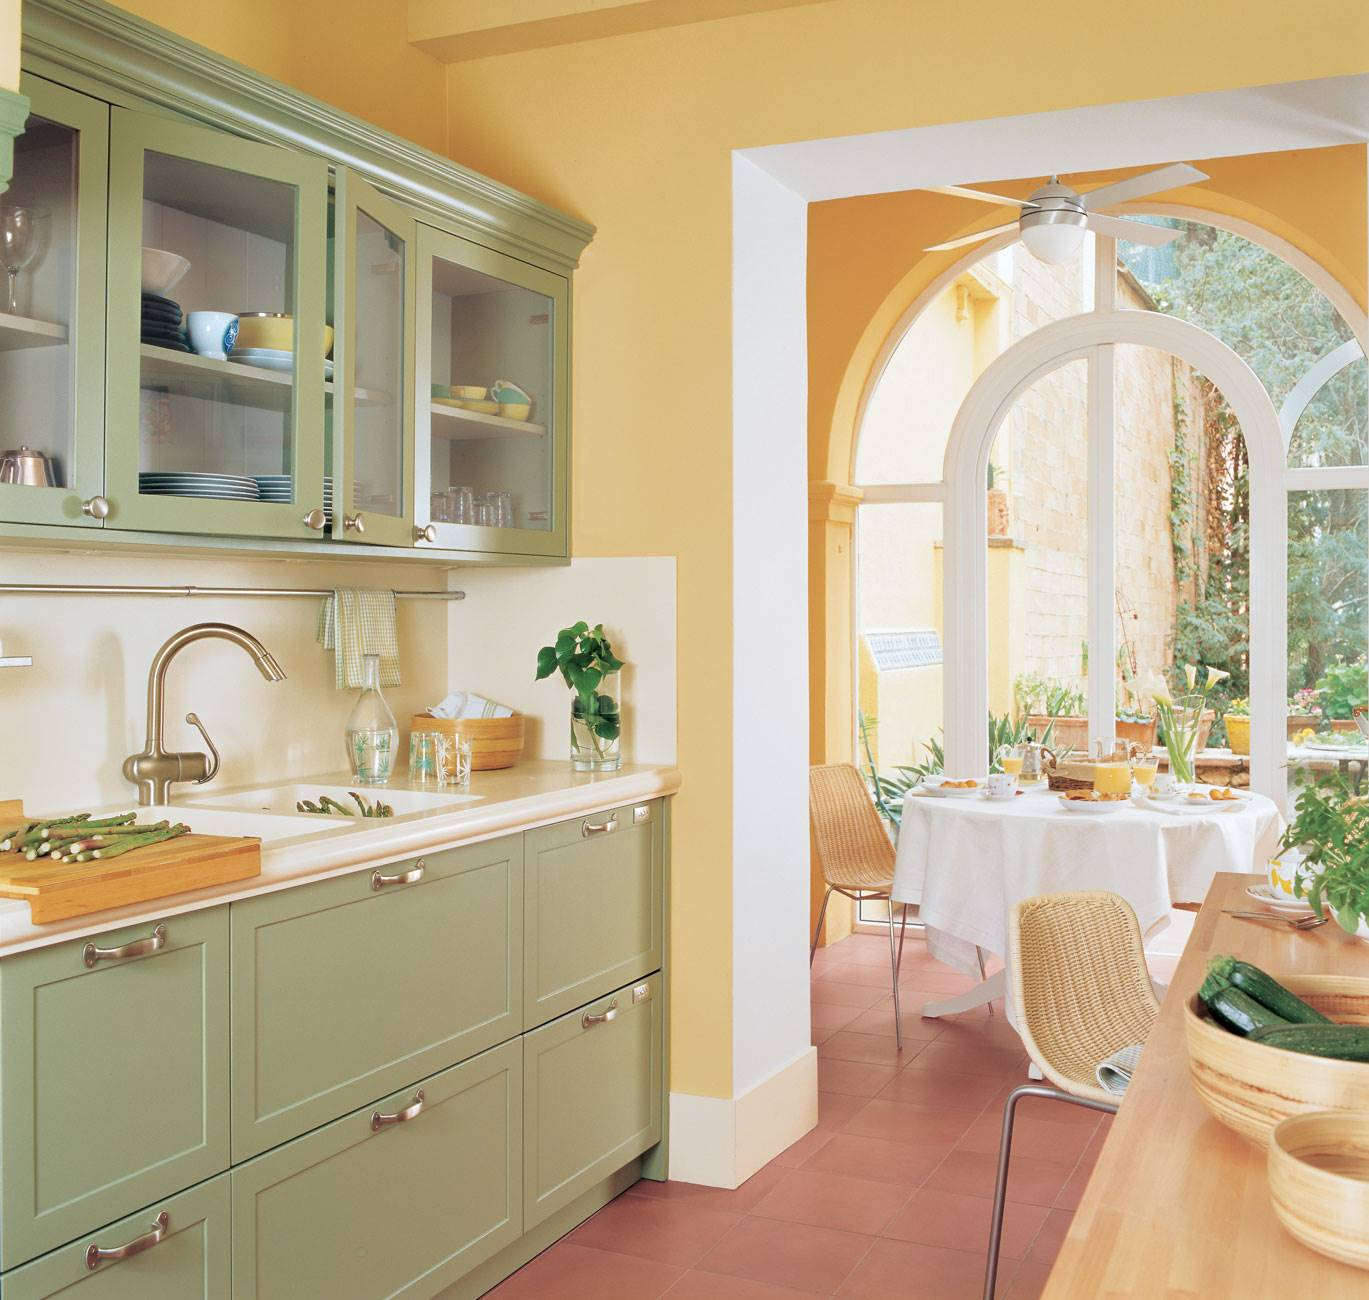 kitchen-yellow-and-verte-elongated-with-dining-end 163033. Color game